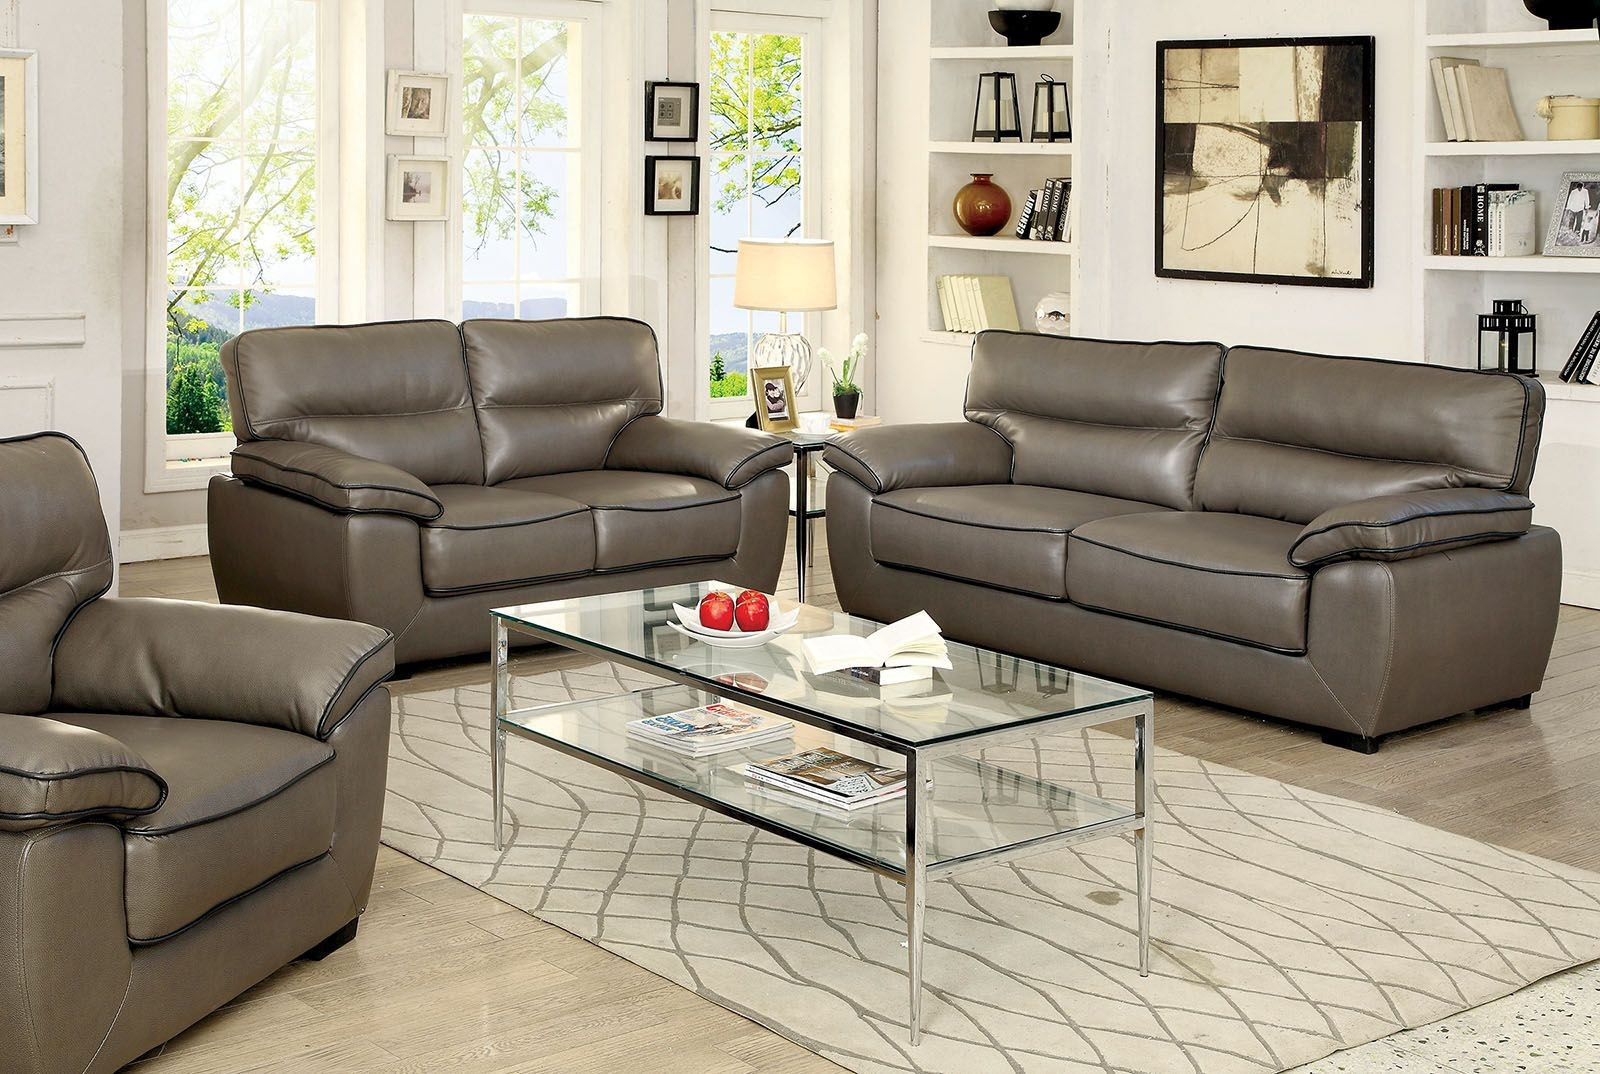 Lennox Gray Shined Faux Leather Living Room Set Cm6126 S